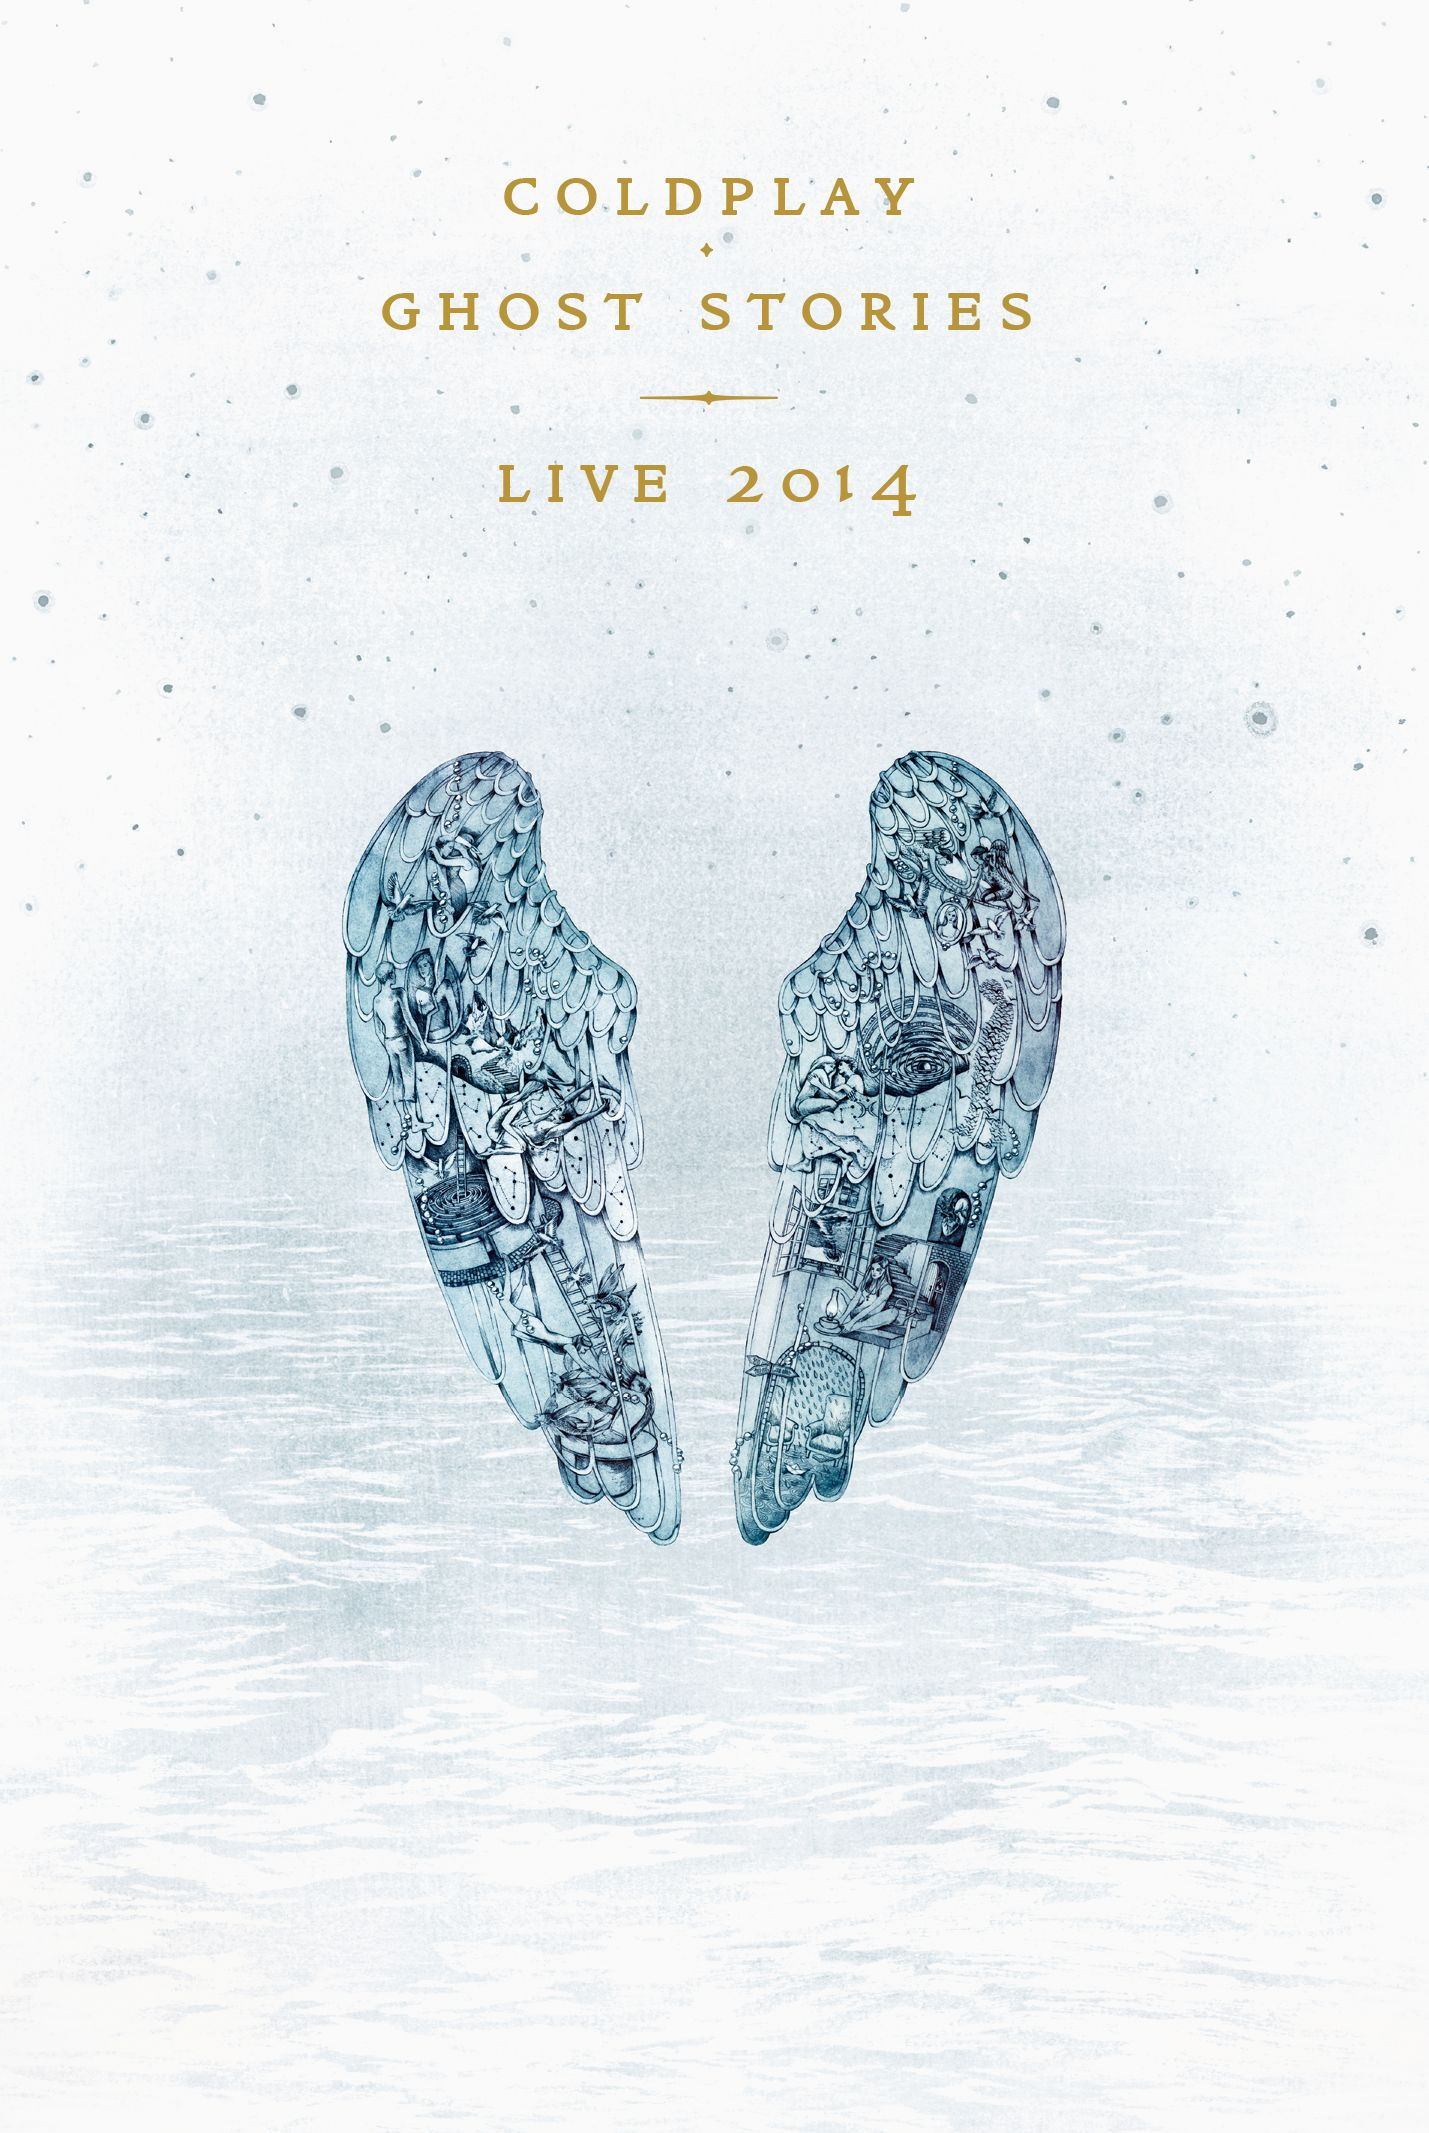 酷玩樂團 / 鬼故事 現場影音實錄 DVD+CD(COLDPLAY / GHOST STORIES LIVE 2014(DVD+CD))